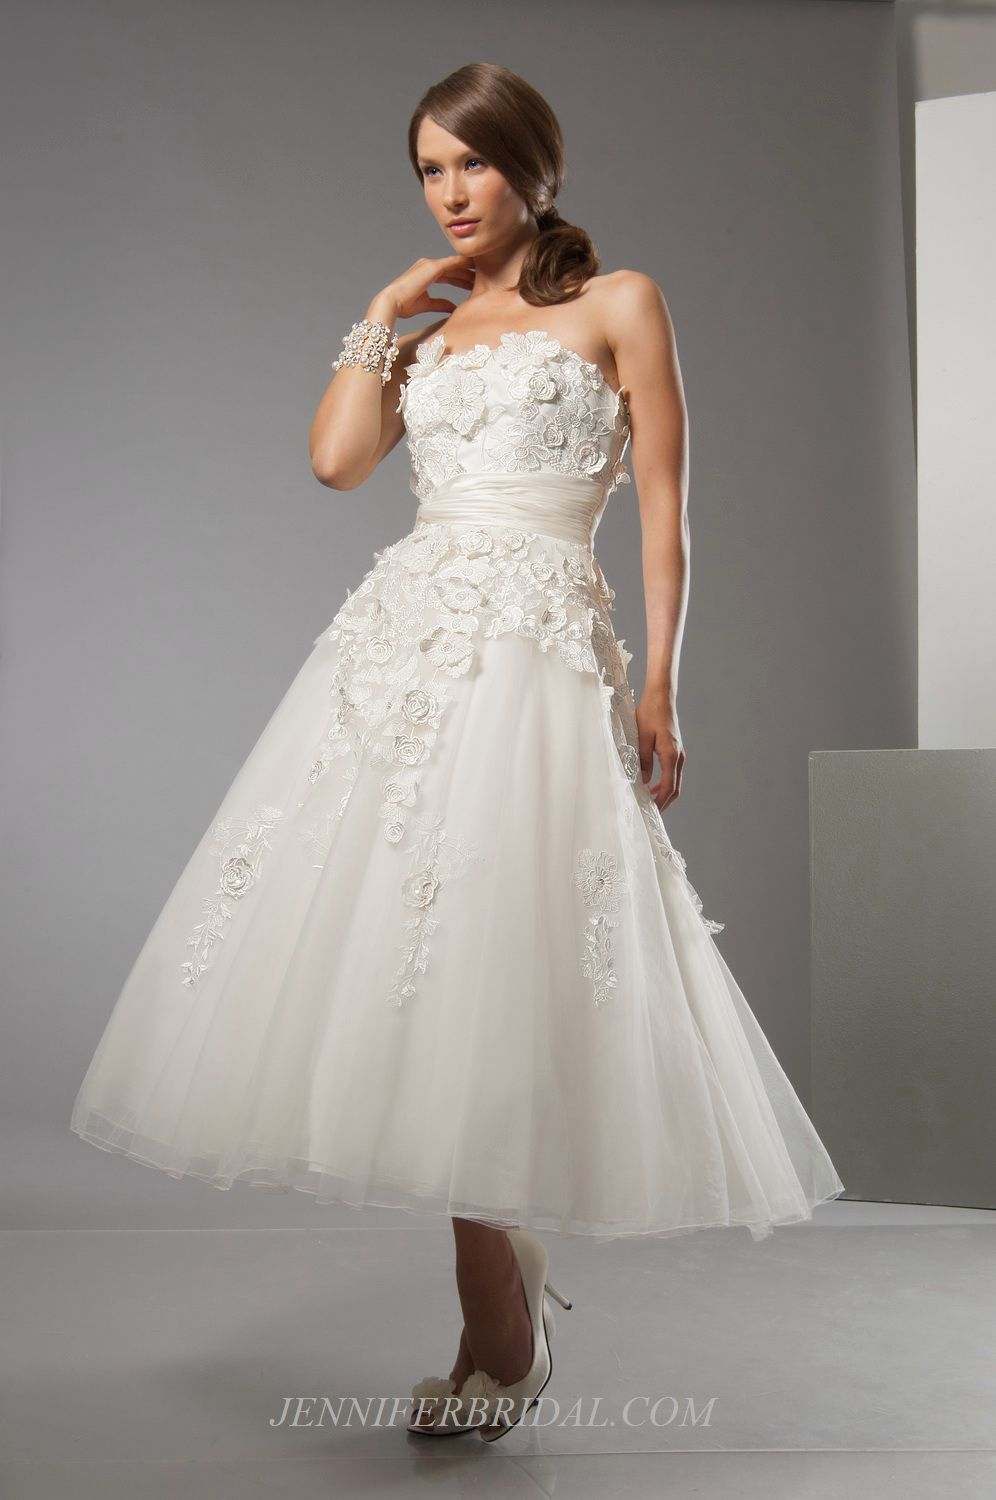 Alfred sung bridal gown style 6884 bridal dress pinterest wedding dress alfred sung bridal ombrellifo Image collections